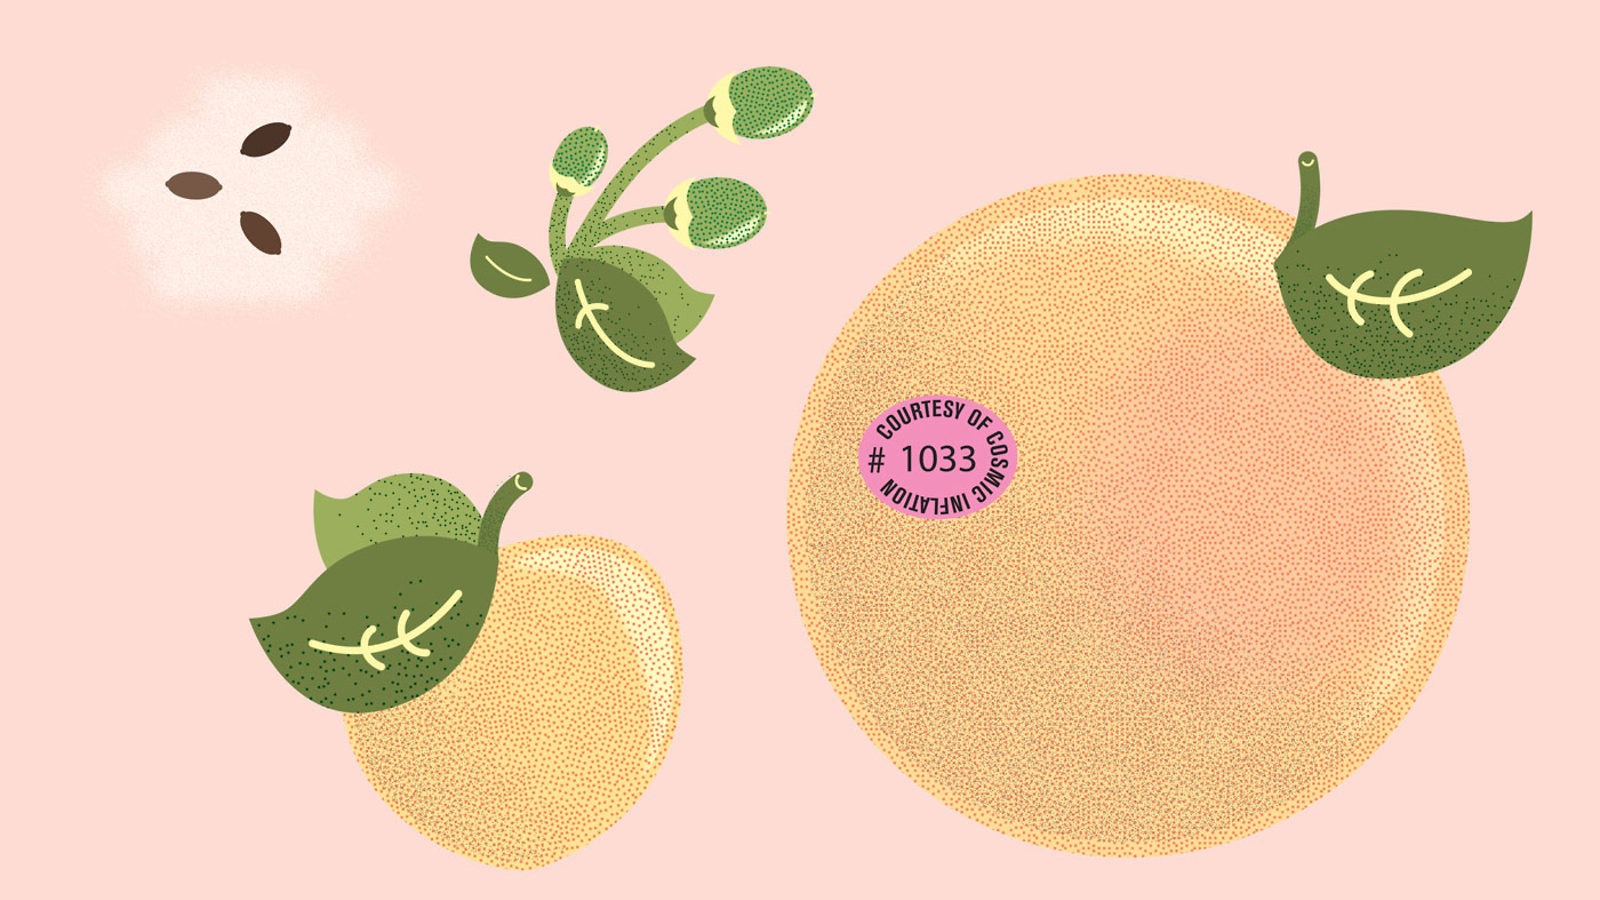 Illustration of peaches or oranges with pink background